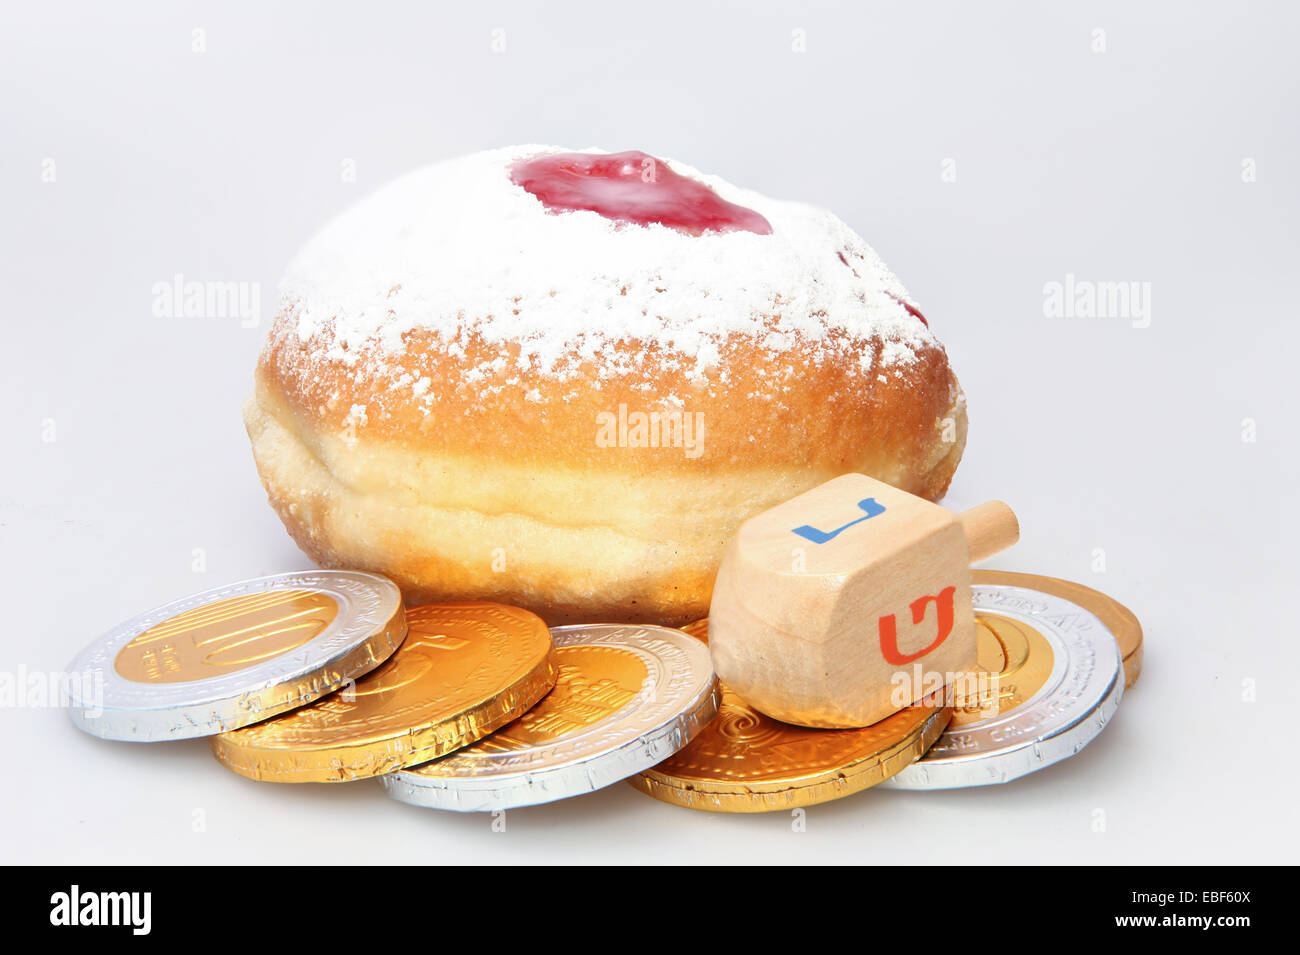 Hanukkah doughnut and spinning top - Traditional jewish holiday food and toy. - Stock Image